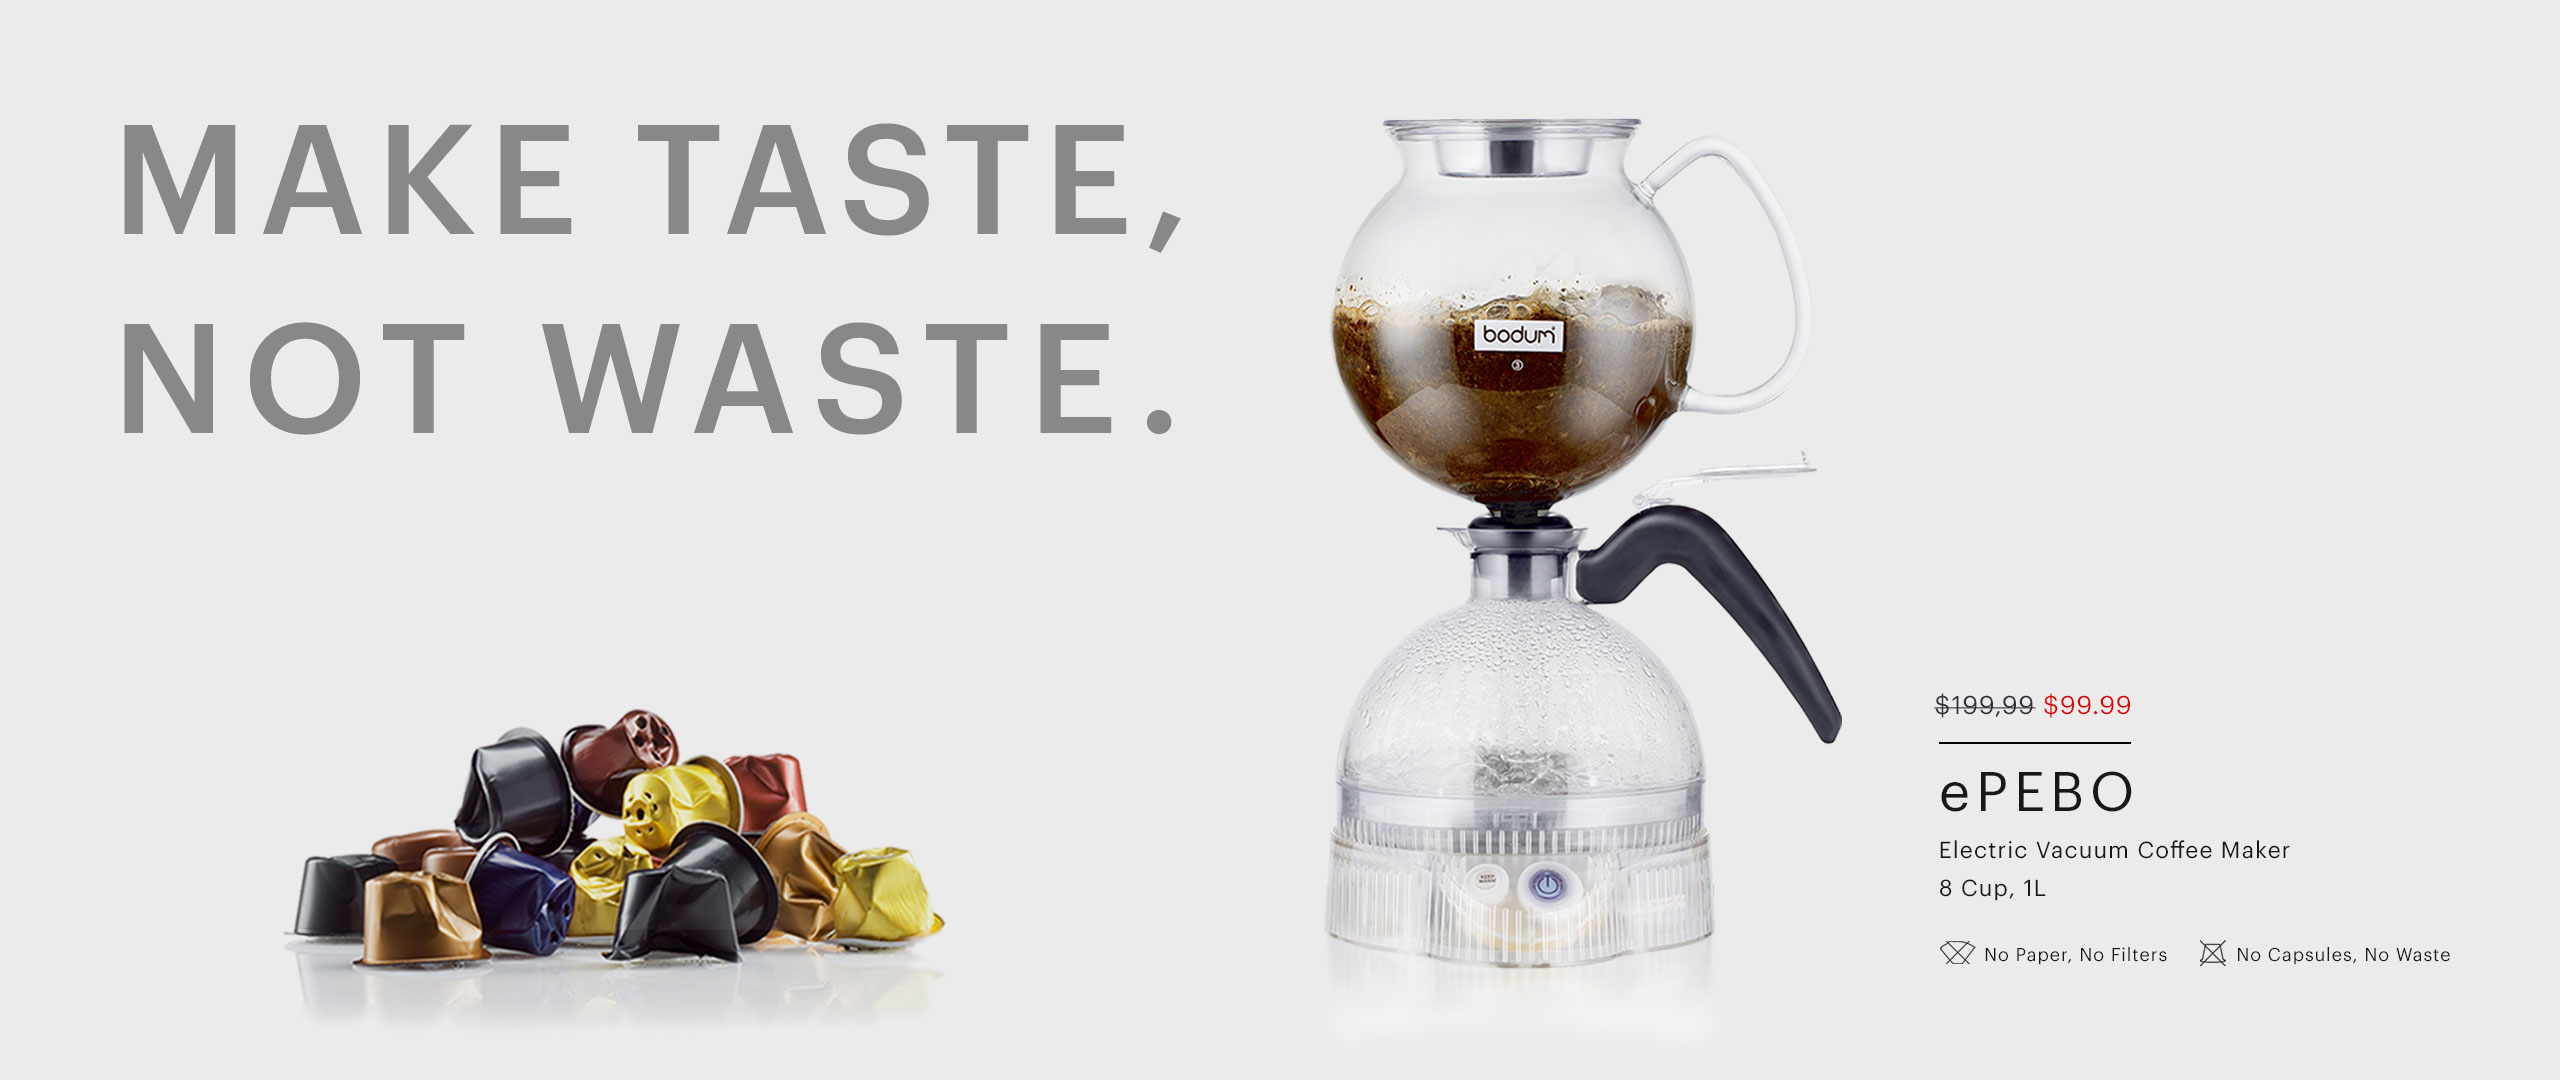 BUS [US] - Make Taste Not Waste ePEBO